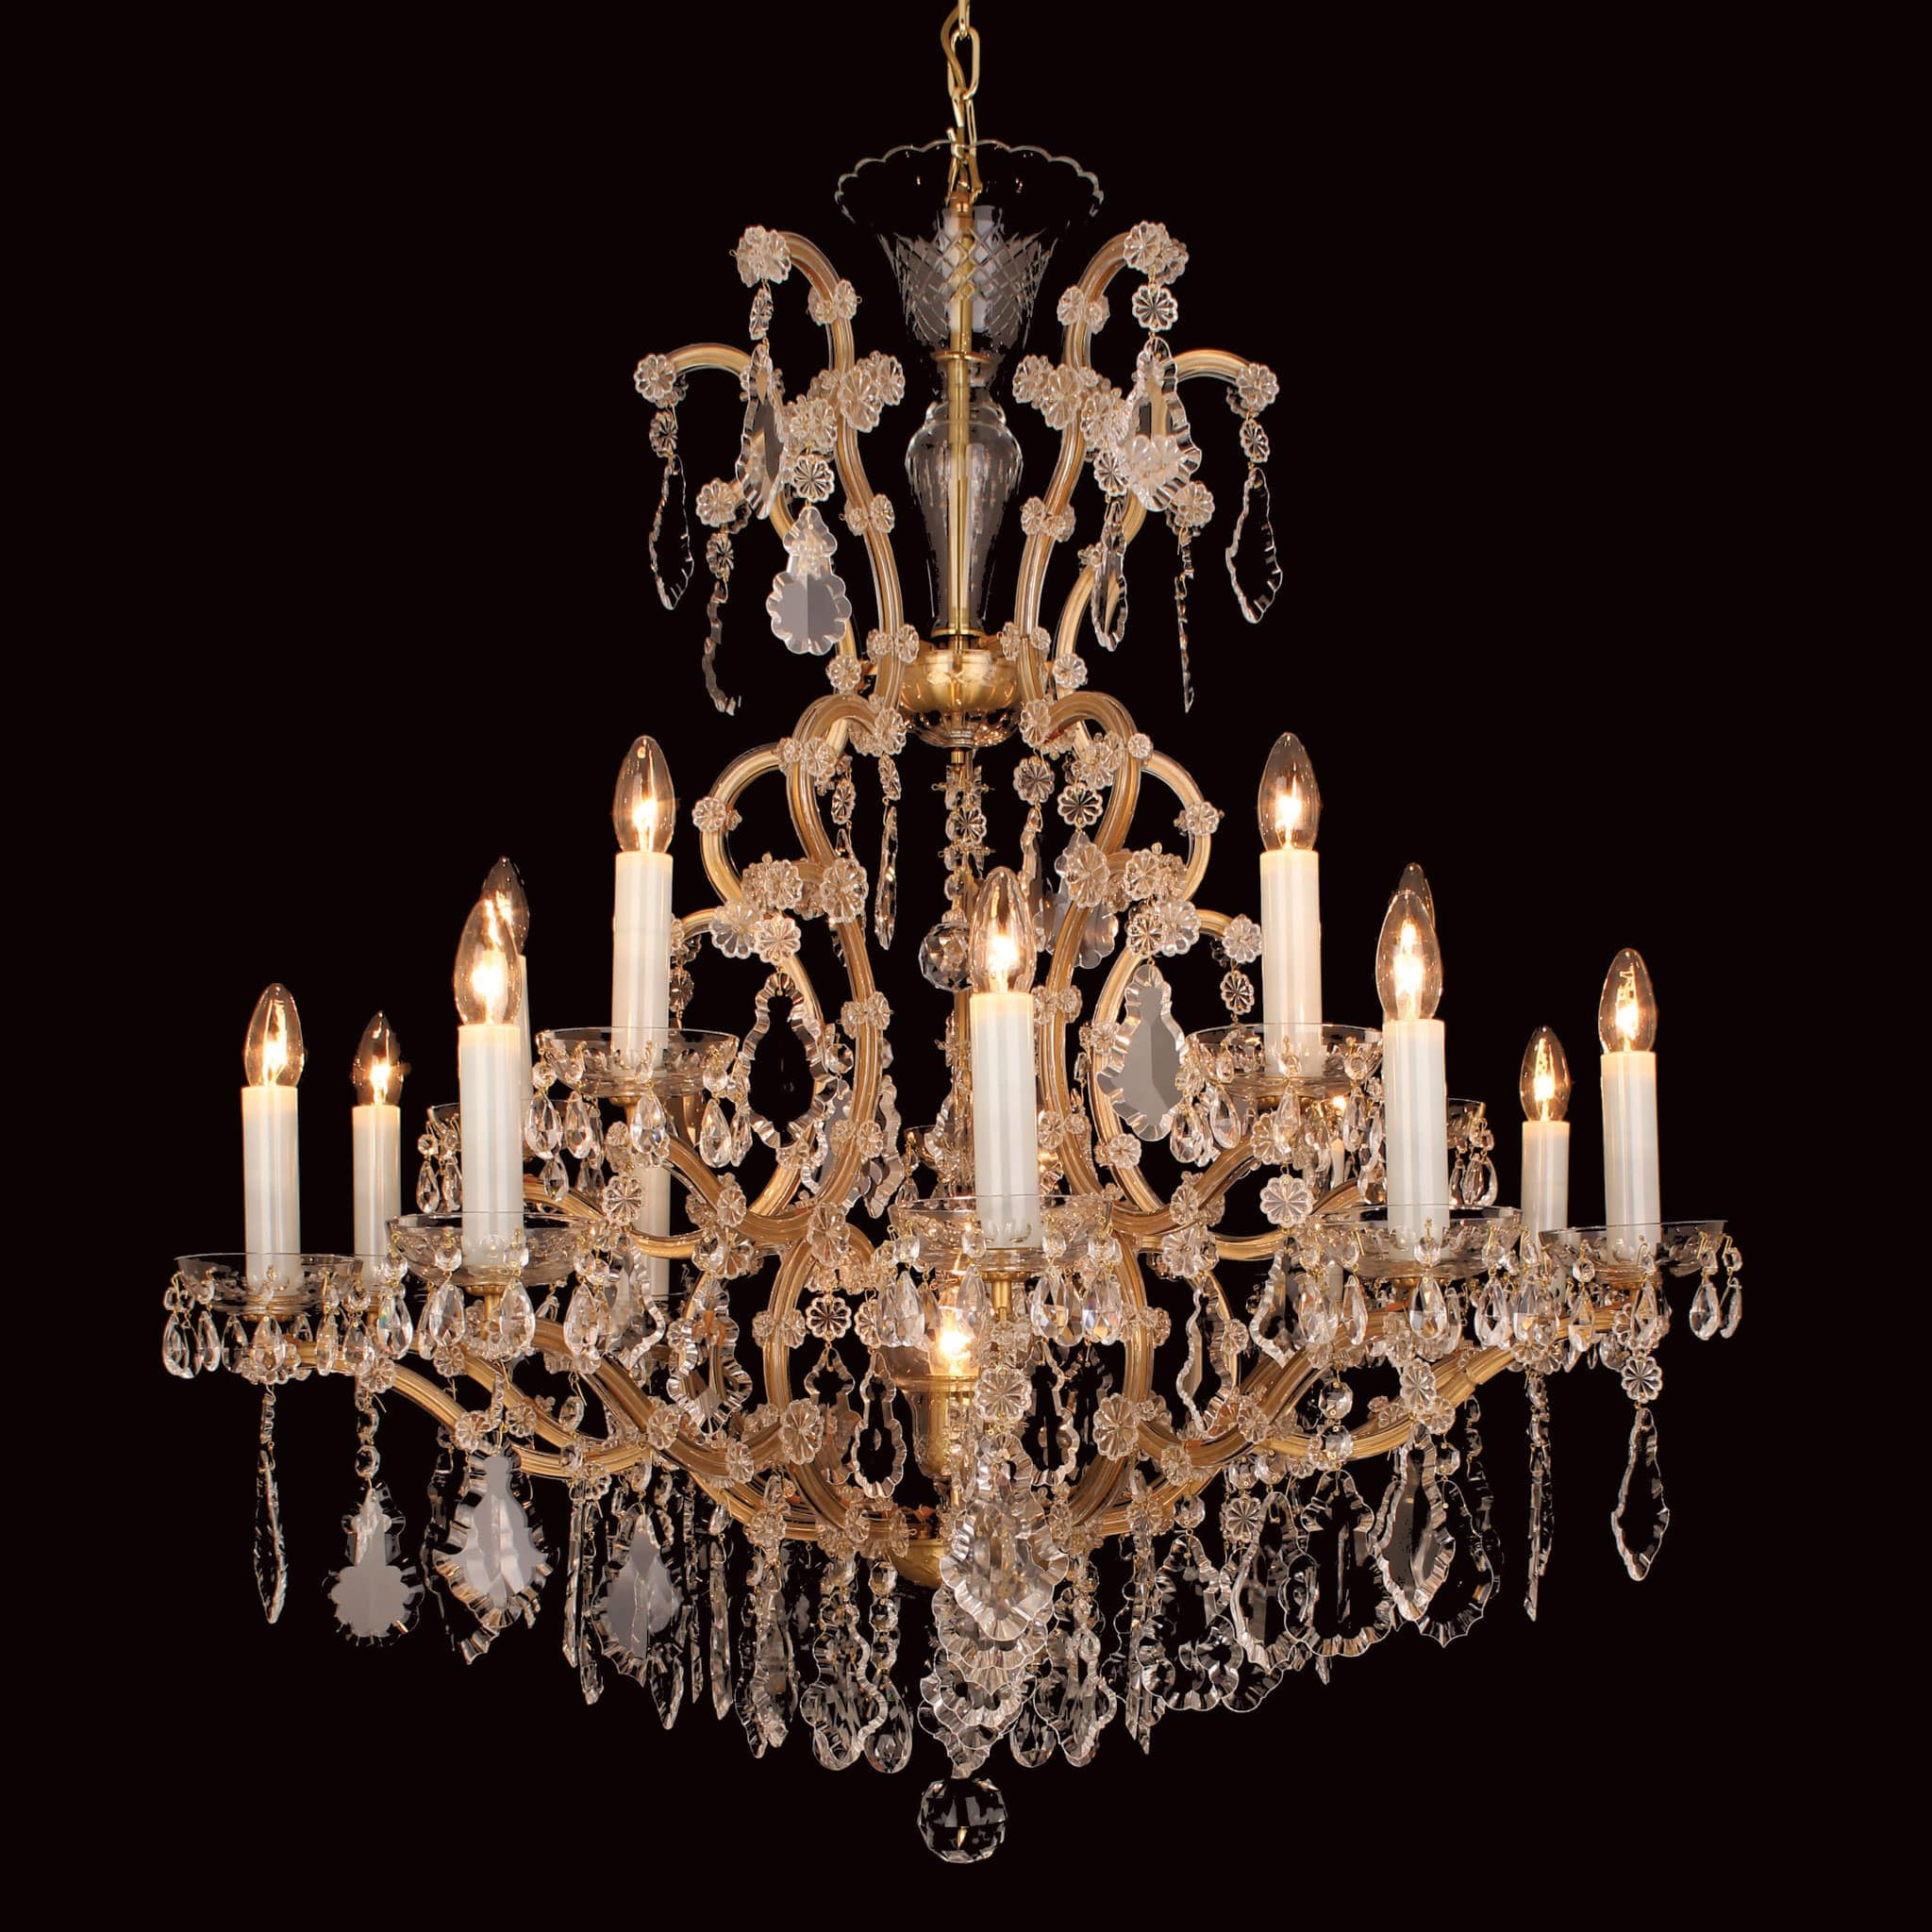 Impex misto 16 light czech preciosa crystal chandelier chandelier impex misto 16 light czech preciosa crystal chandelier cb14531116 aloadofball Gallery